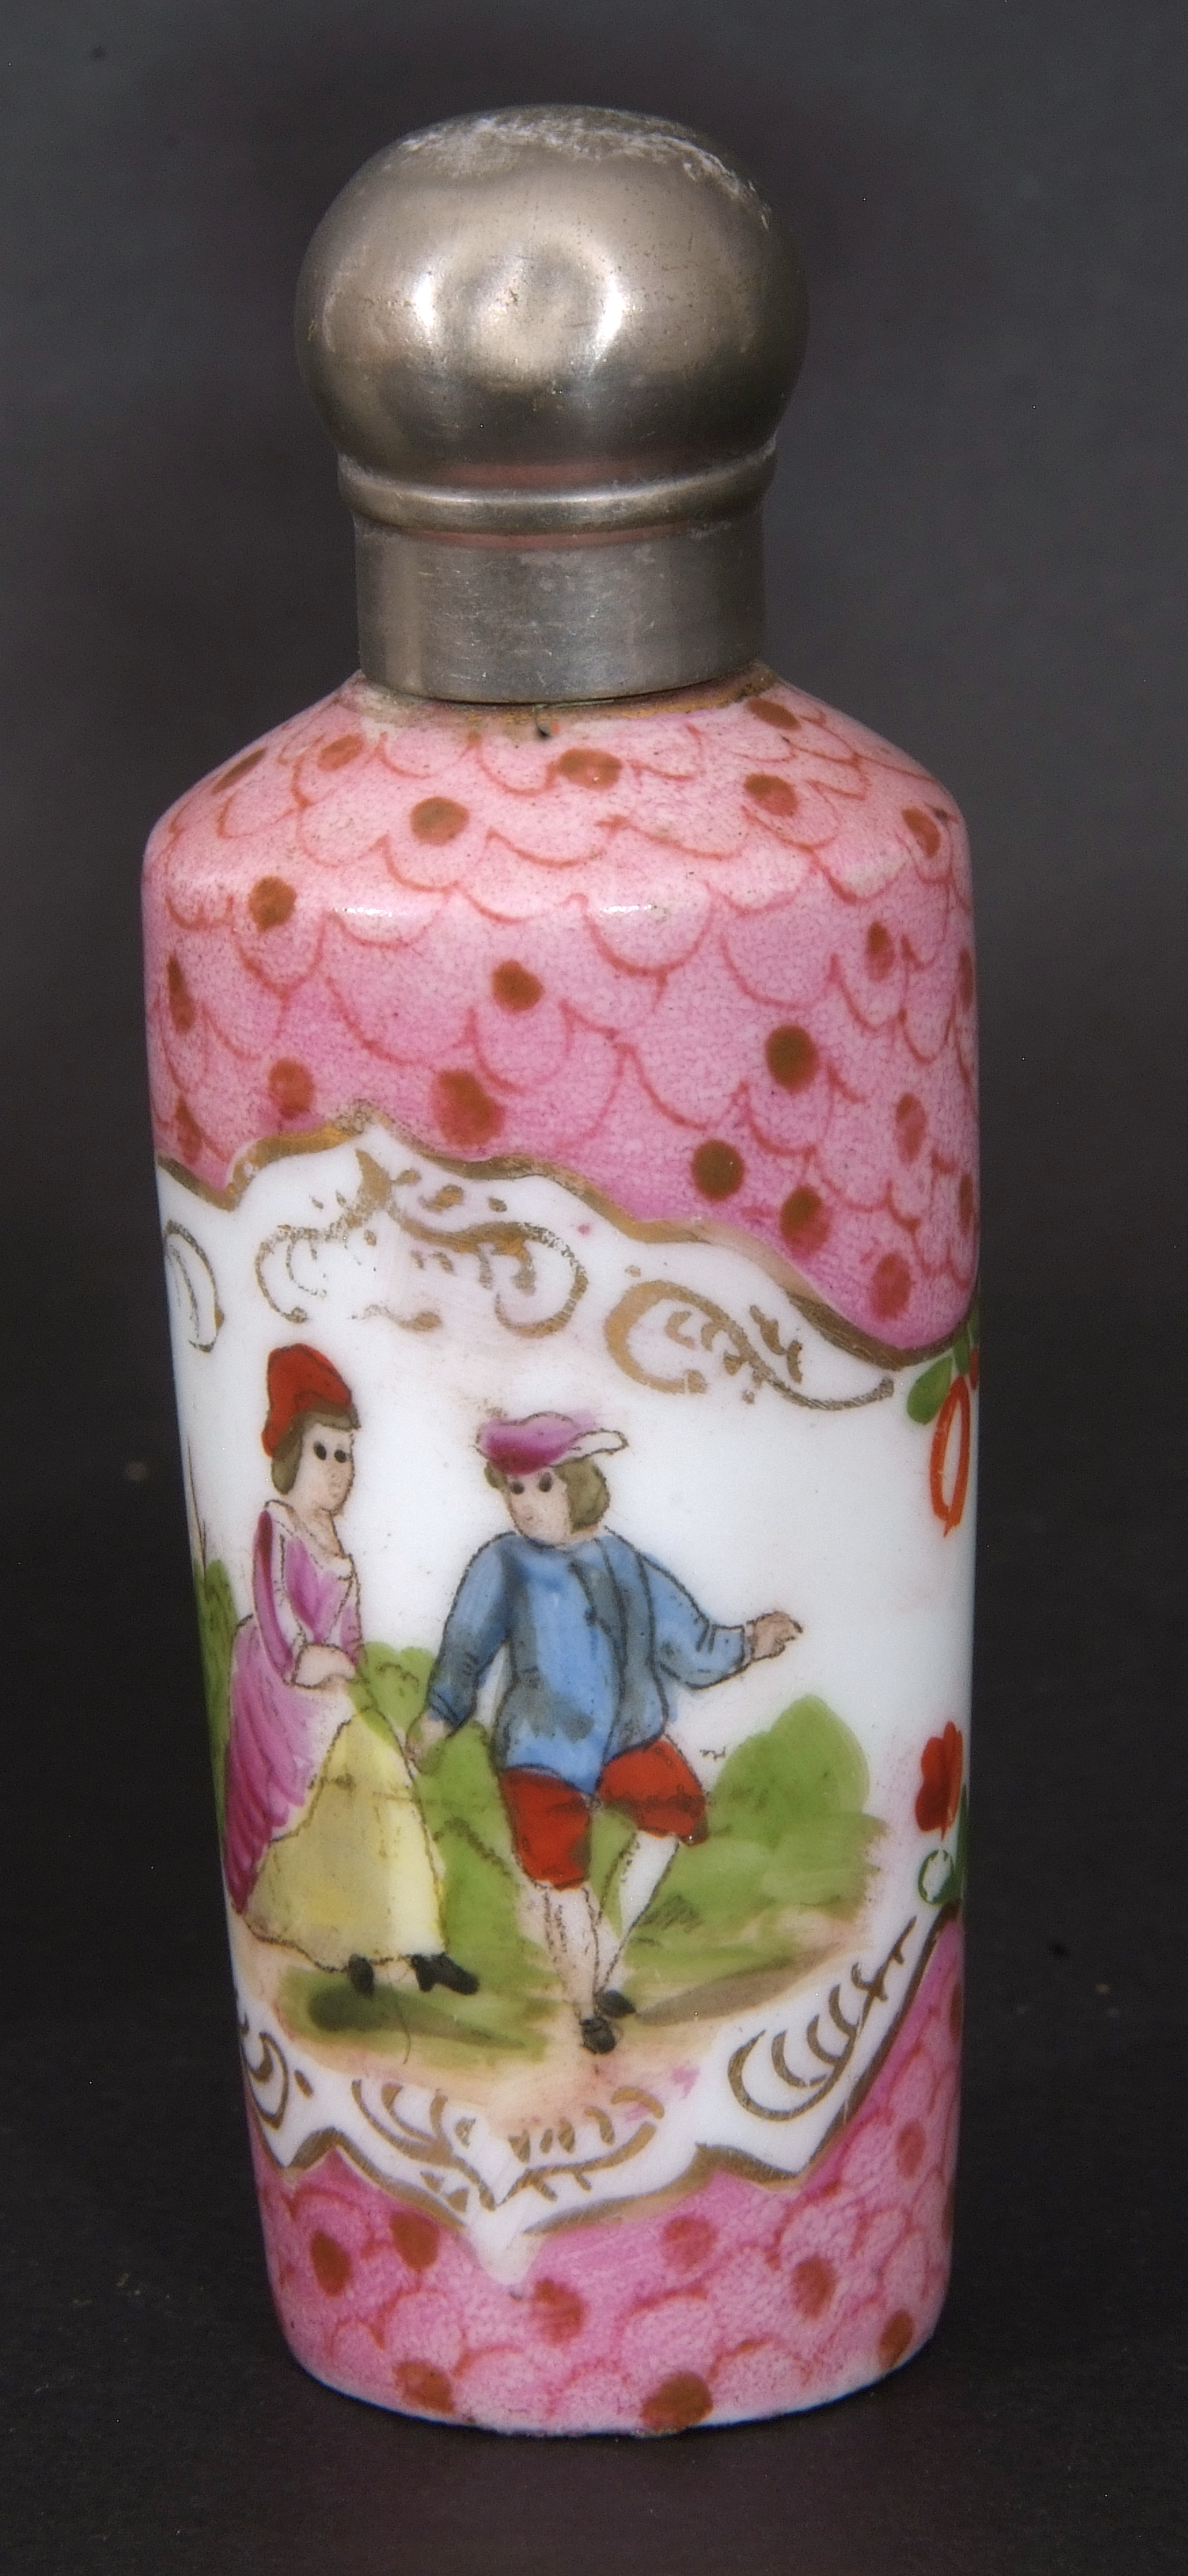 Mixed Lot: 19th century milk glass scent bottle with gilt metal hinged lid with inset to cap, a - Image 6 of 12